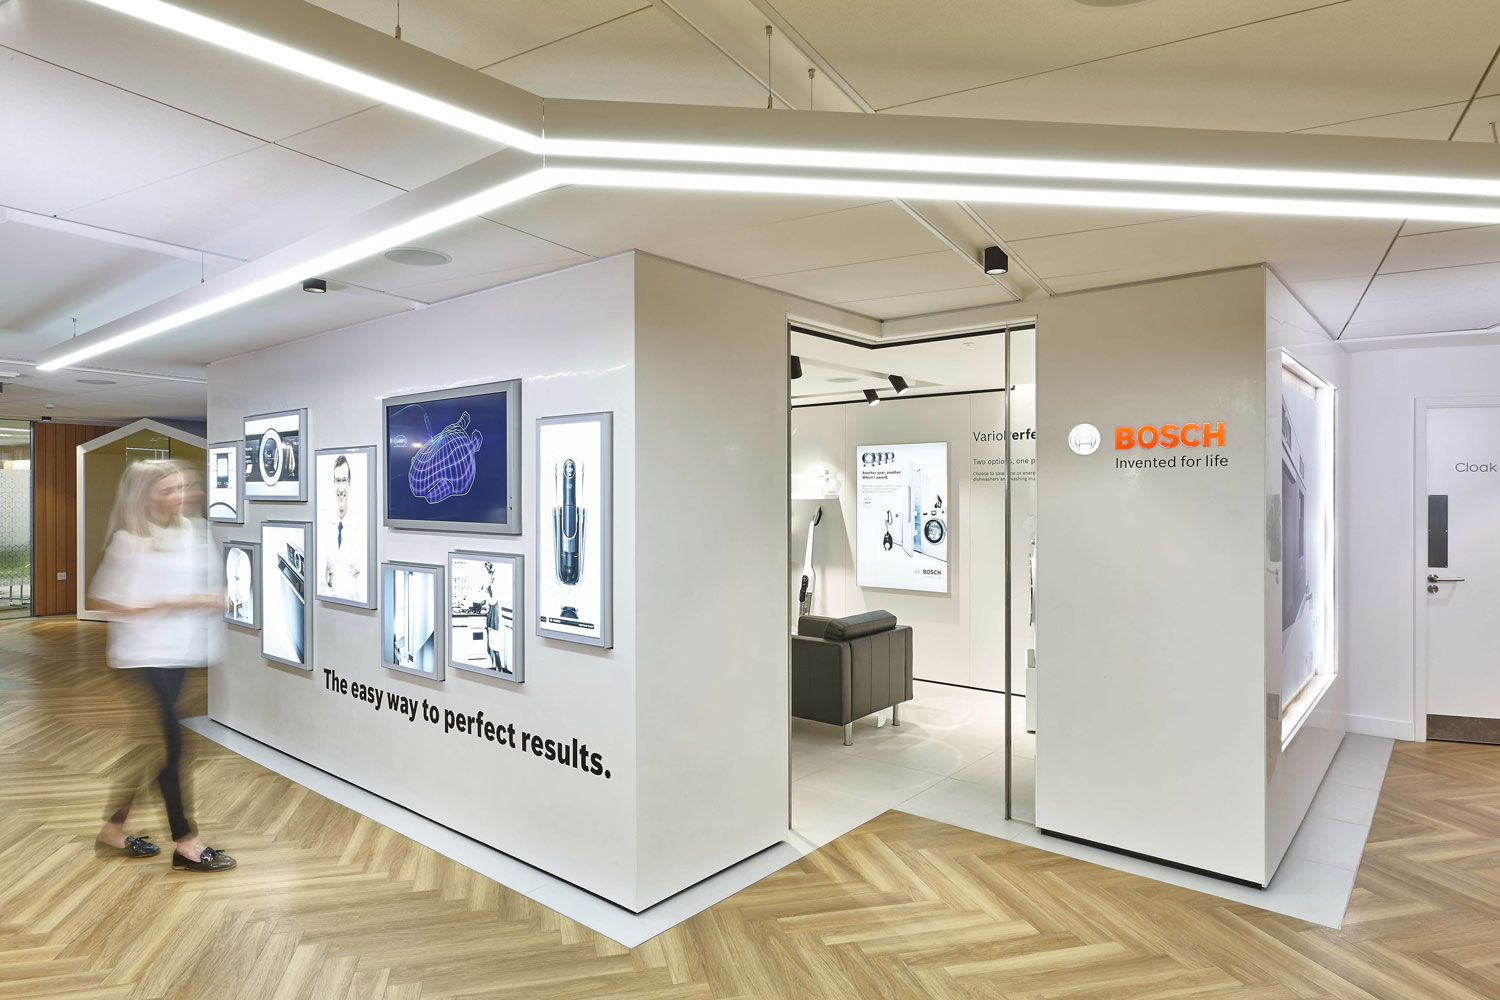 Bosch Product Display Area Milton Keynes | London Interior Photographer